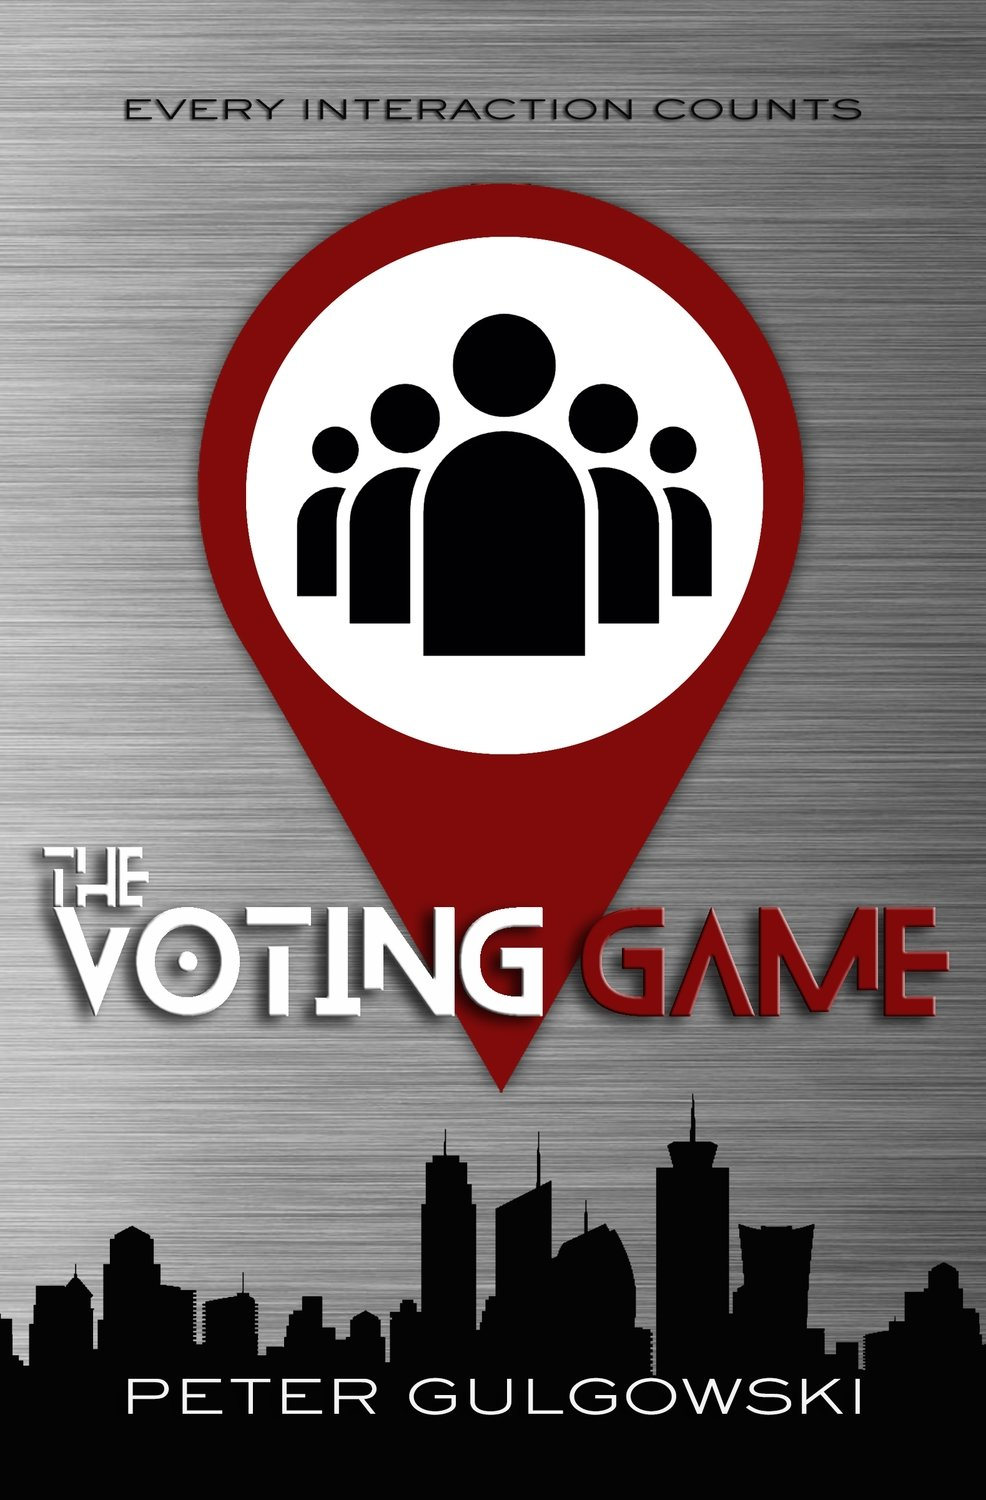 The Voting Game (2018) SIGNED